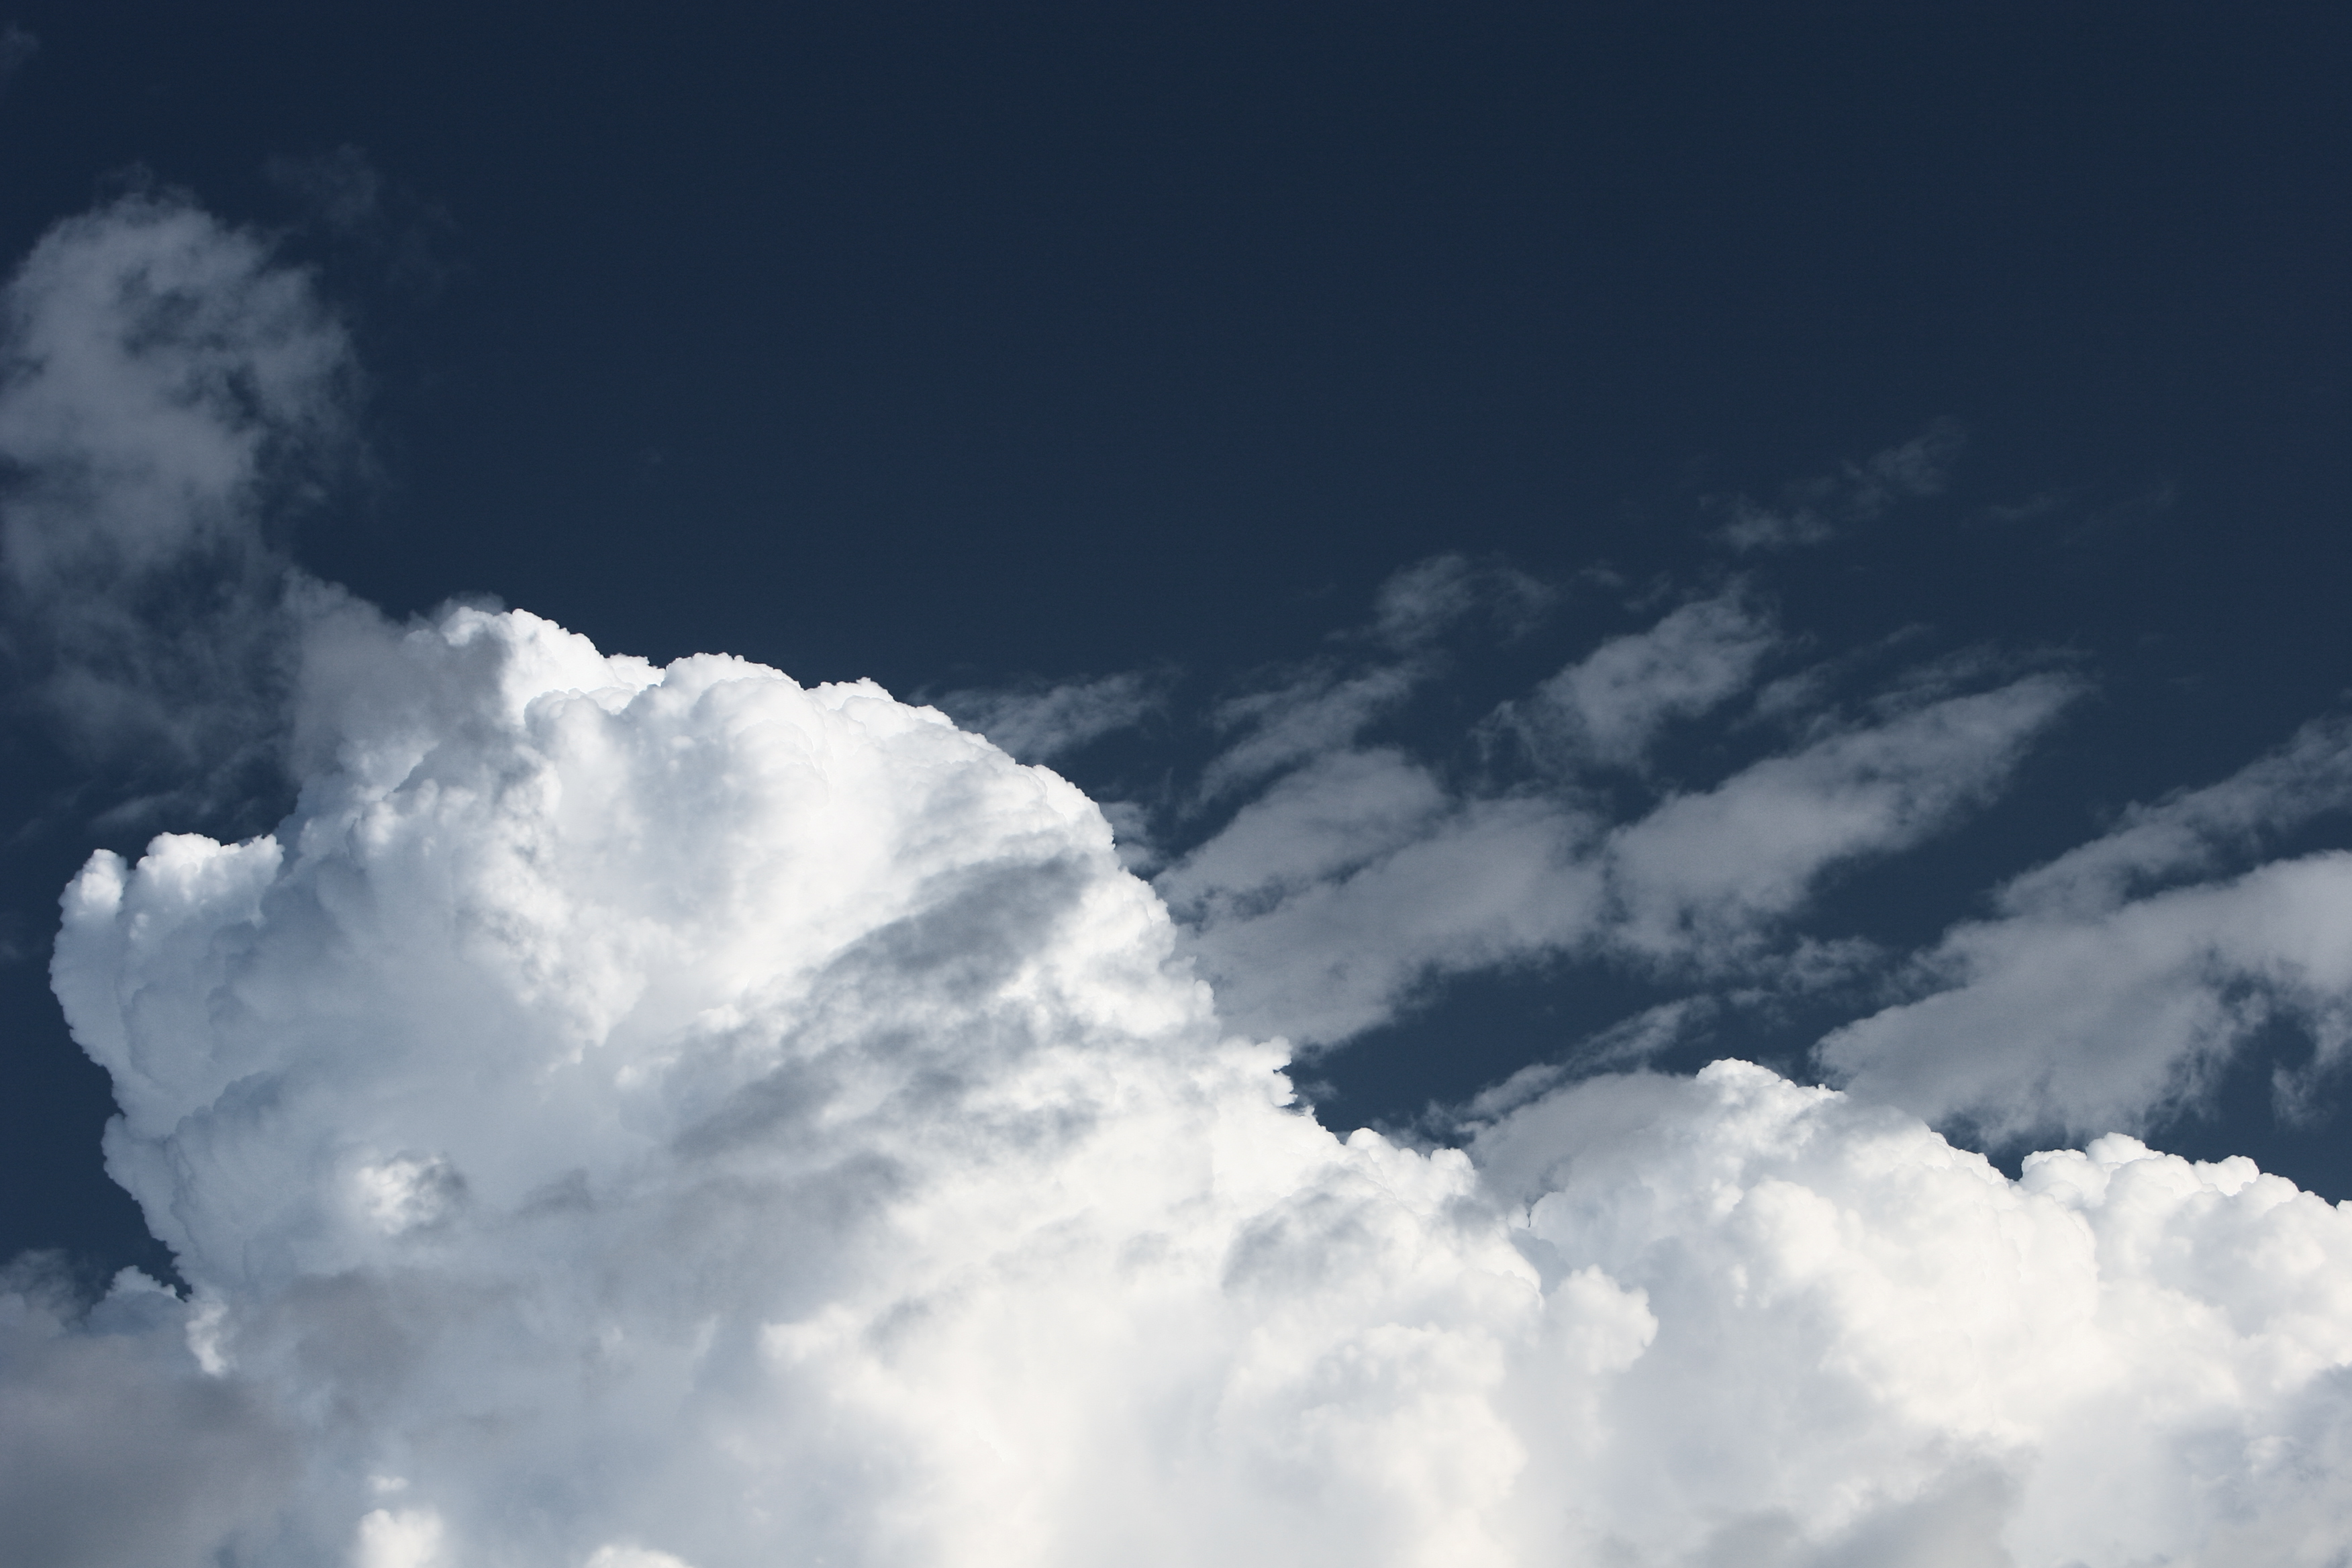 Clouds, Cloudy, Overcast, Skies, Sky, HQ Photo